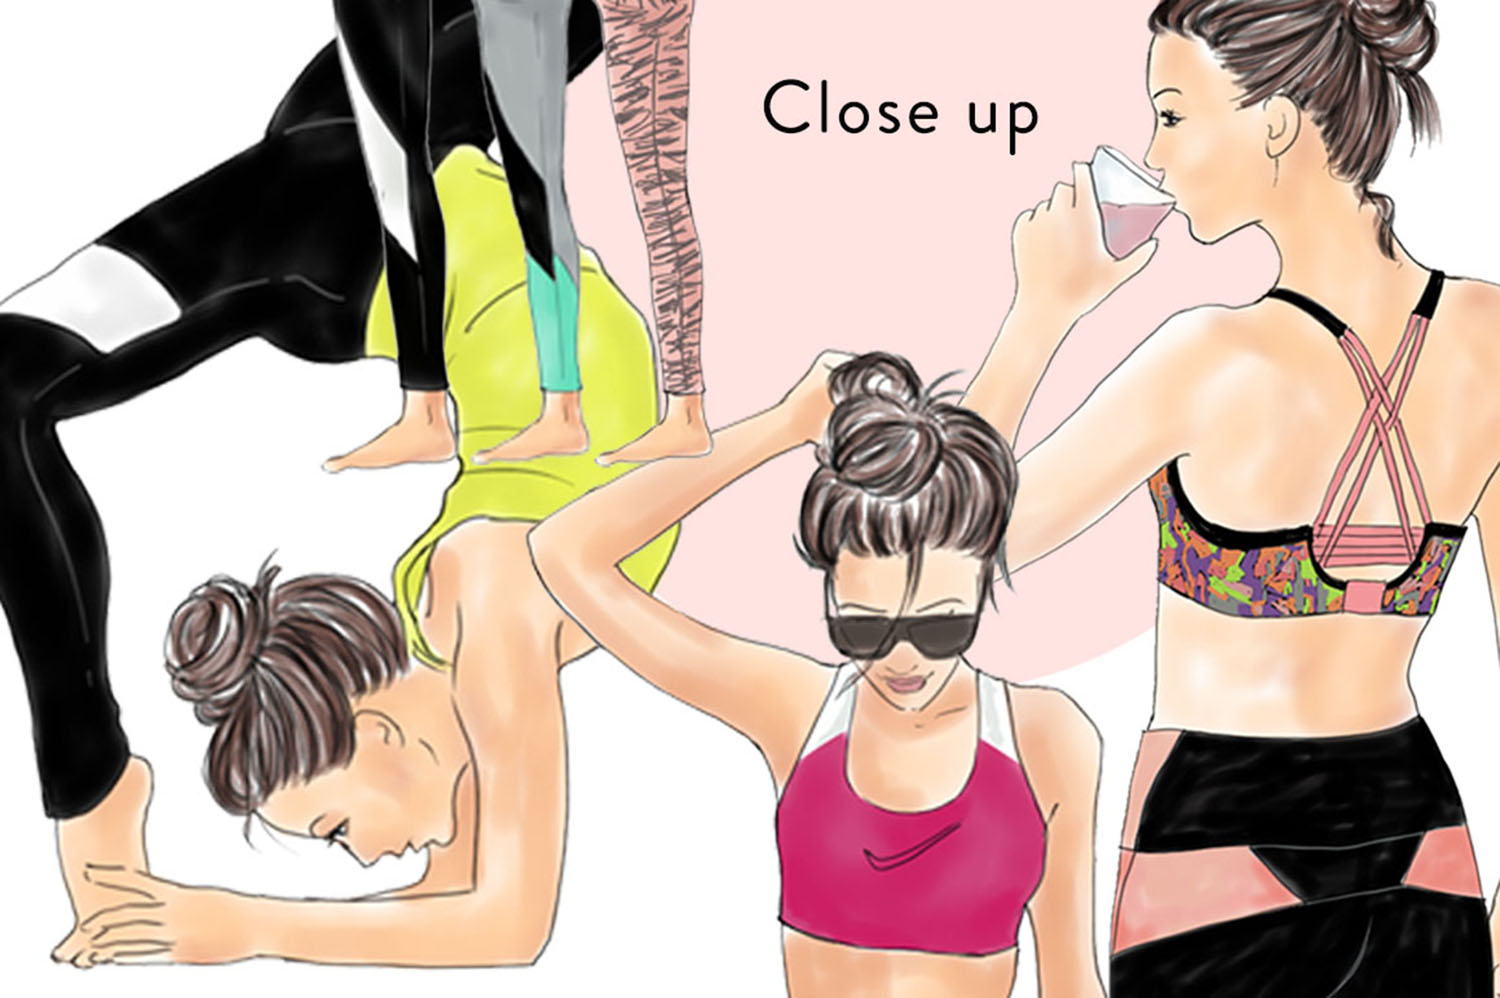 Yoga girls watercolour illustrated clipart example image 3